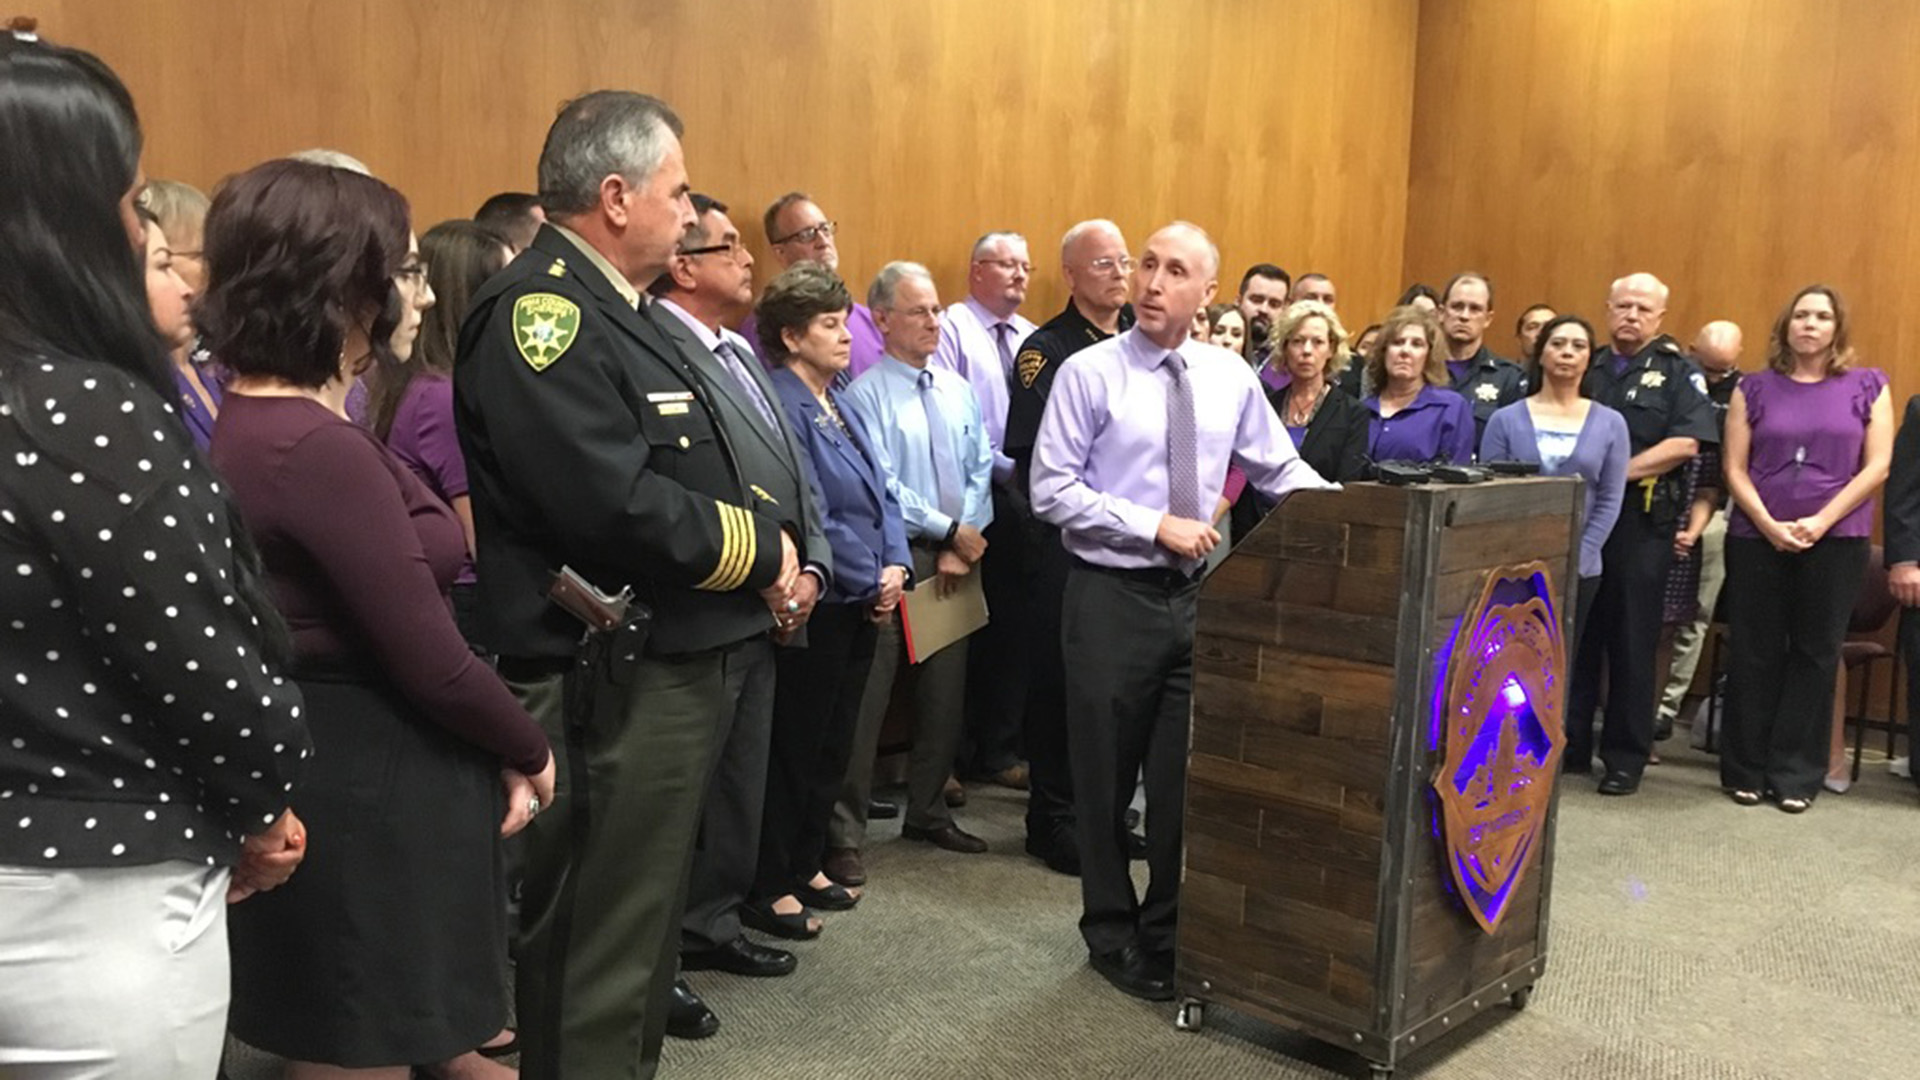 Ed Mercurio-Sakwa, the CEO of Emerge! Center Against Domestic Abuse, speaks to a group of city and county officials and staffers at a press conference for Domestic Violence Awareness Month October 1, 2019.